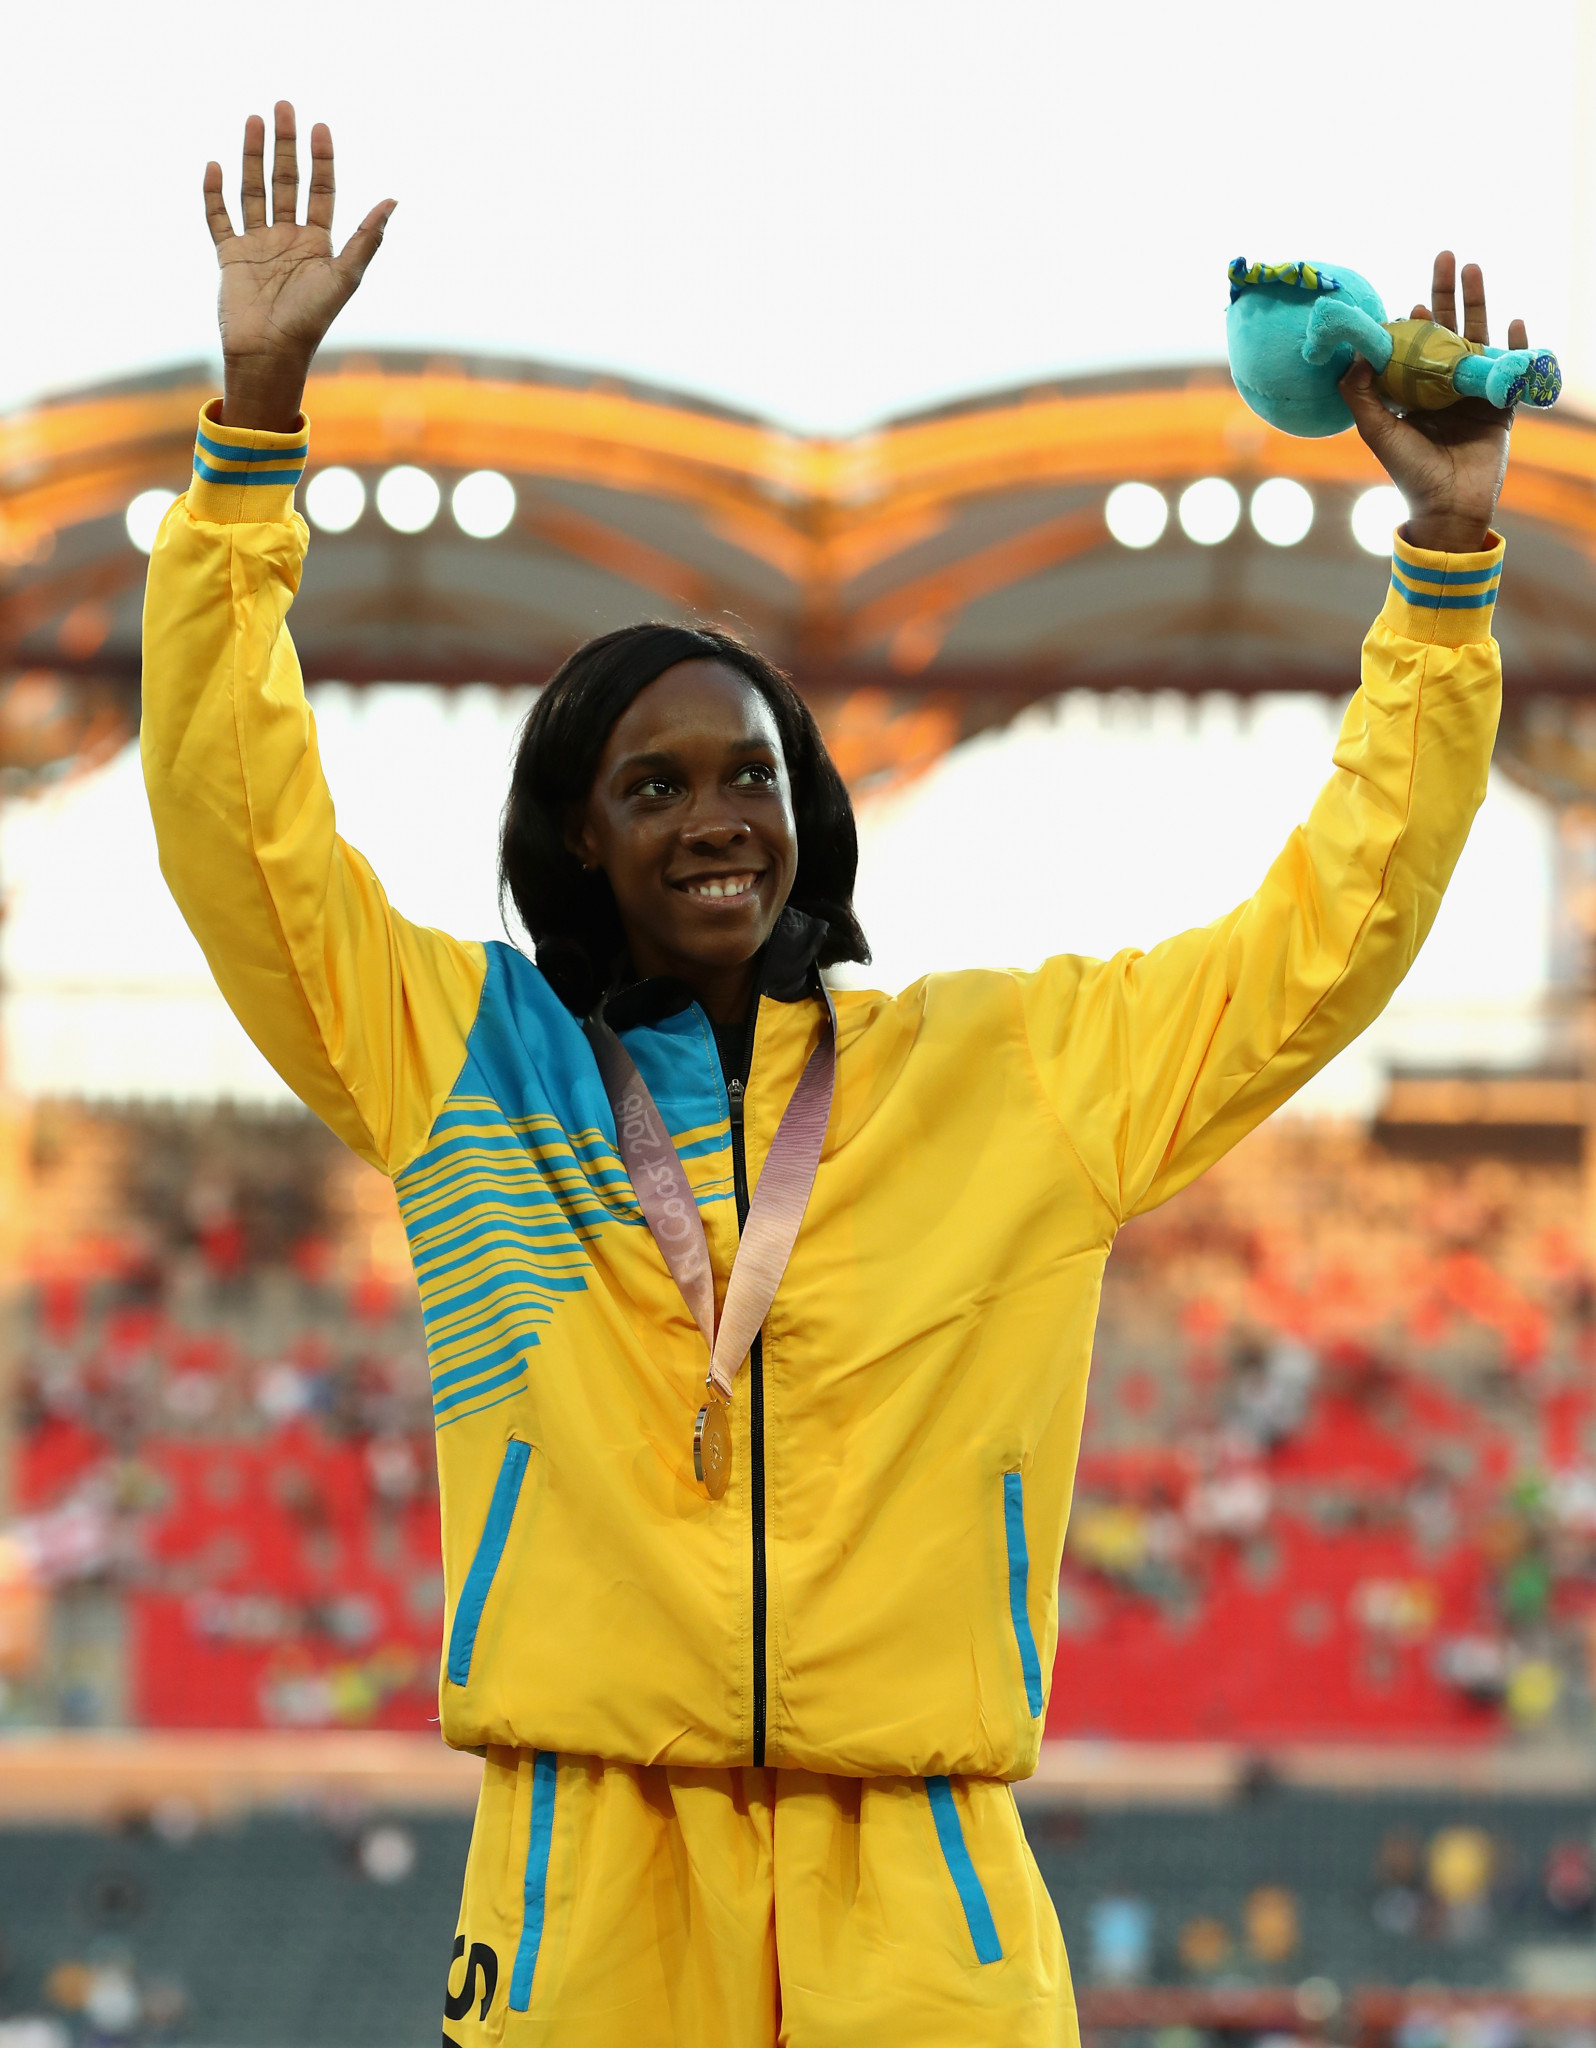 High jumper Spencer claims historic gold medal for St Lucia on day 10 of the Gold Coast 2018 Commonwealth Games